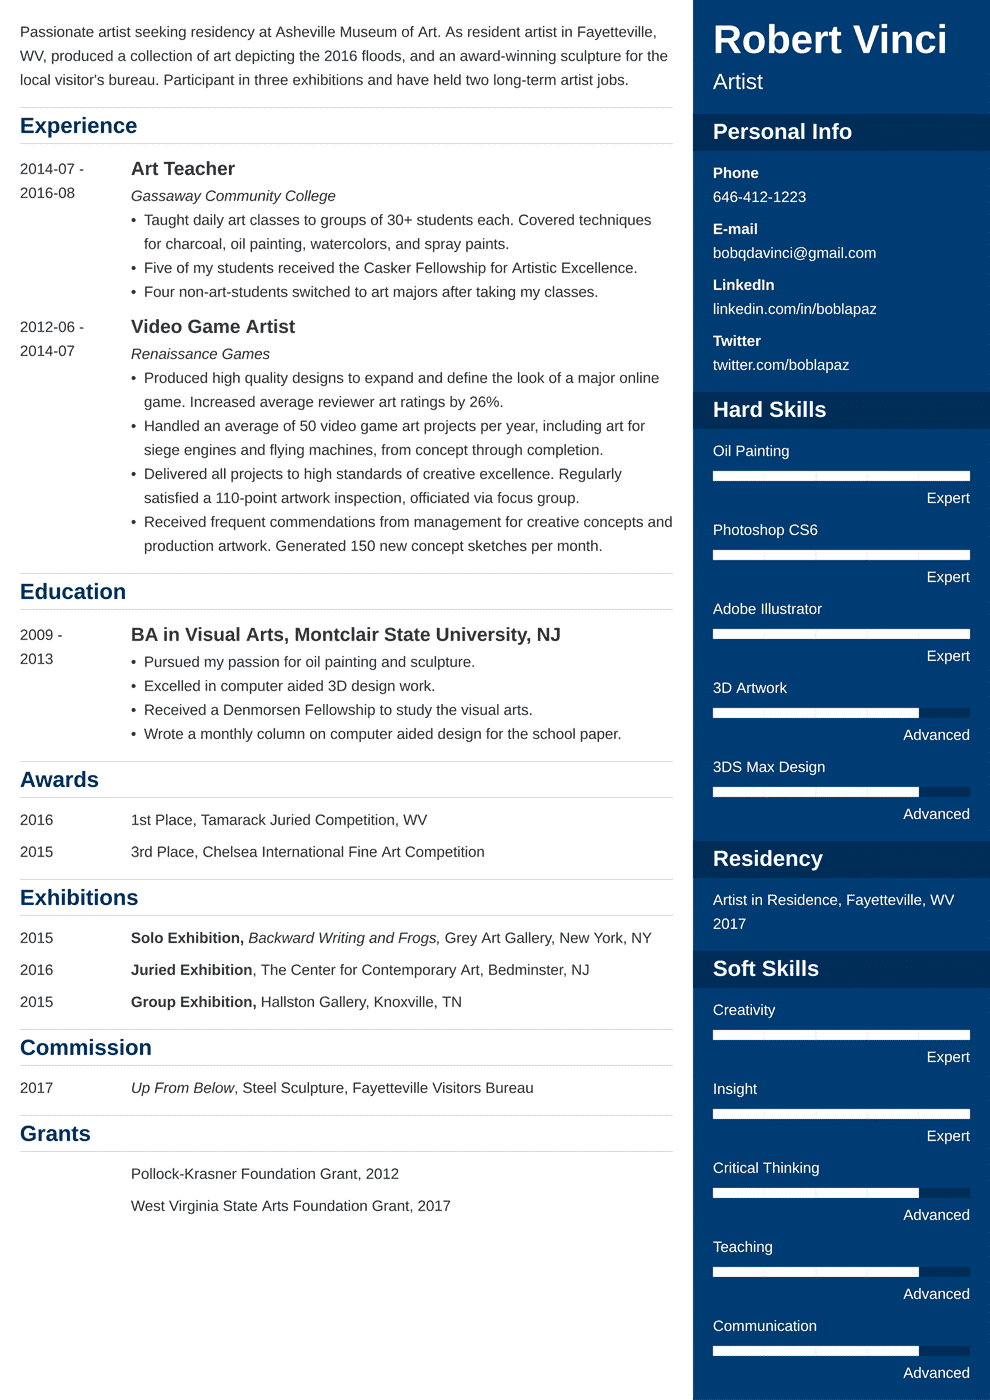 artist resume template enfold in 2020 Resume examples